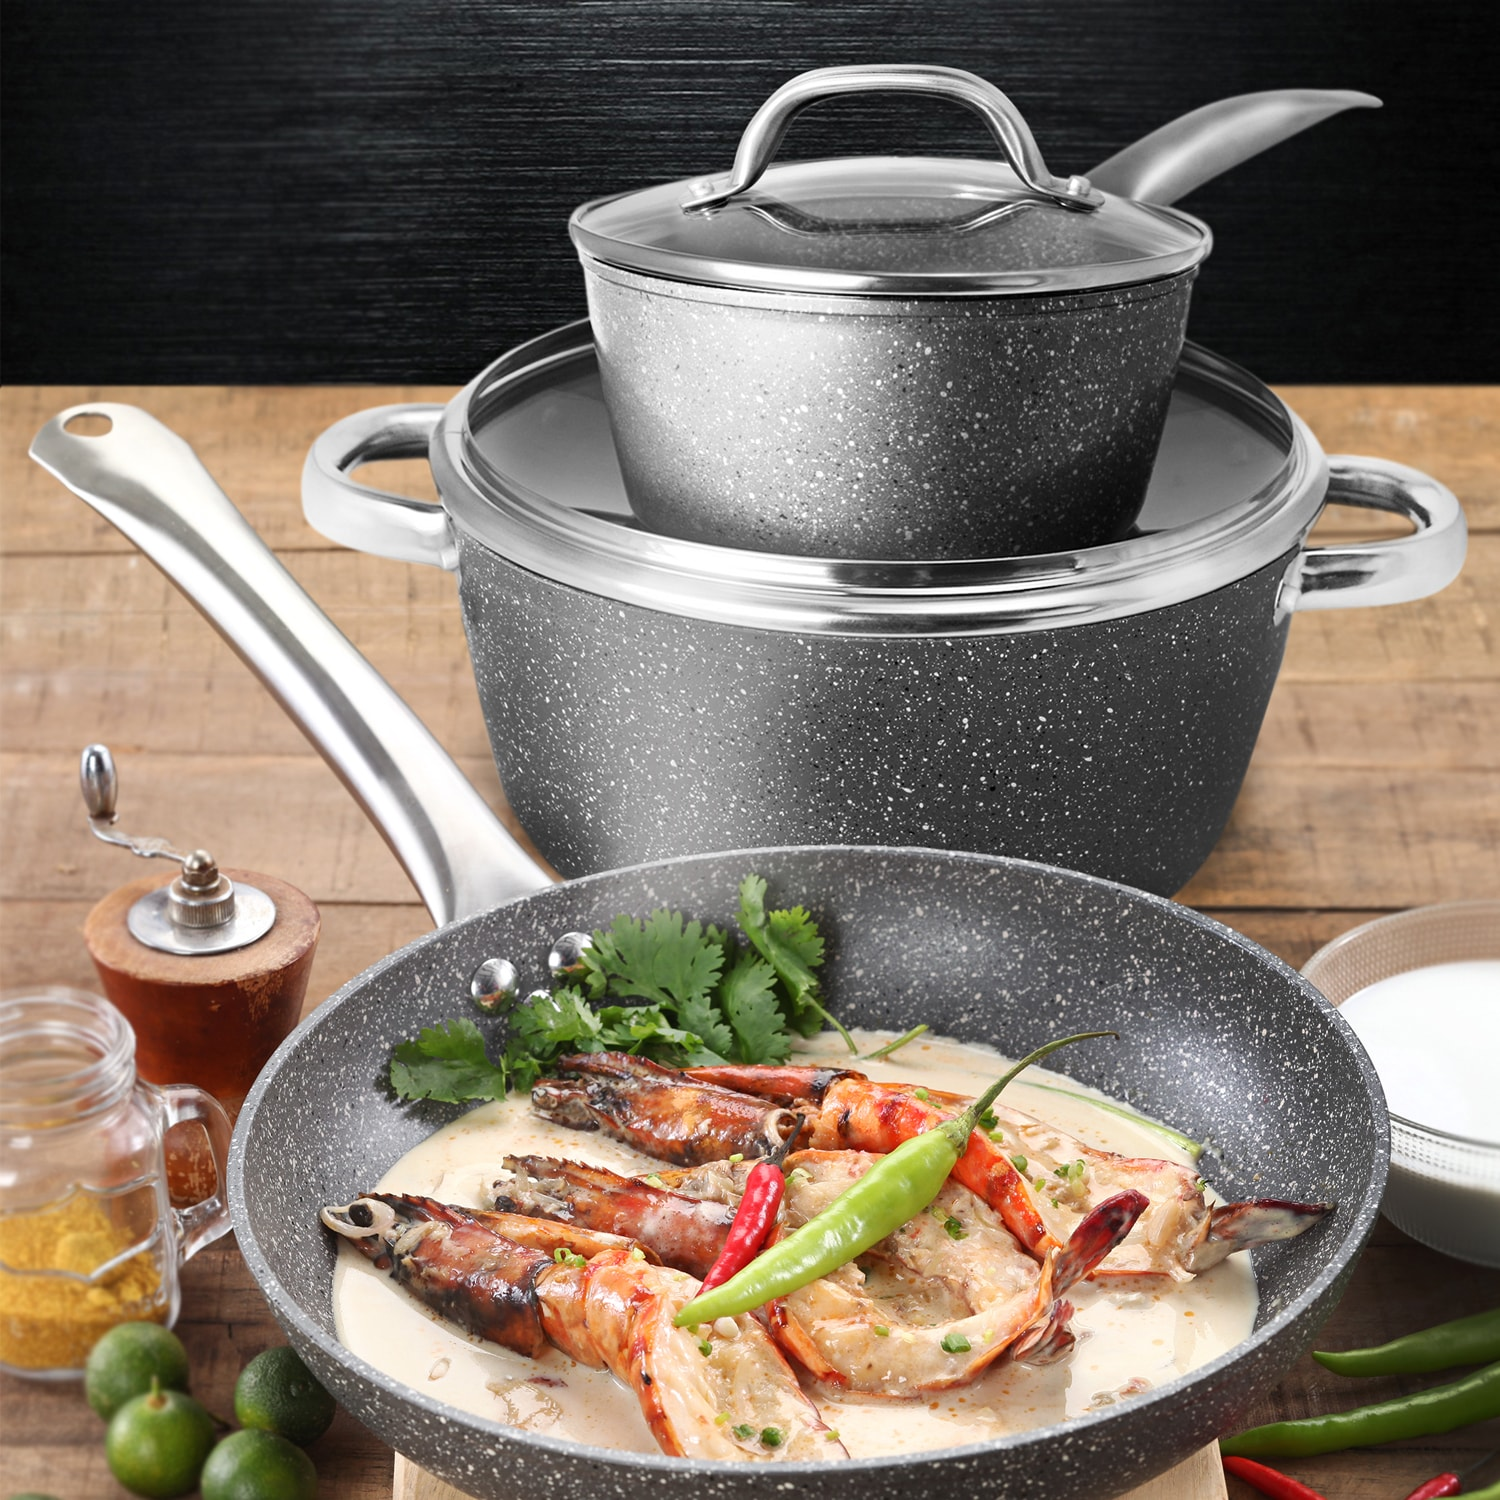 Masflex Forged Stone Aluminum Non-stick Induction Cookware